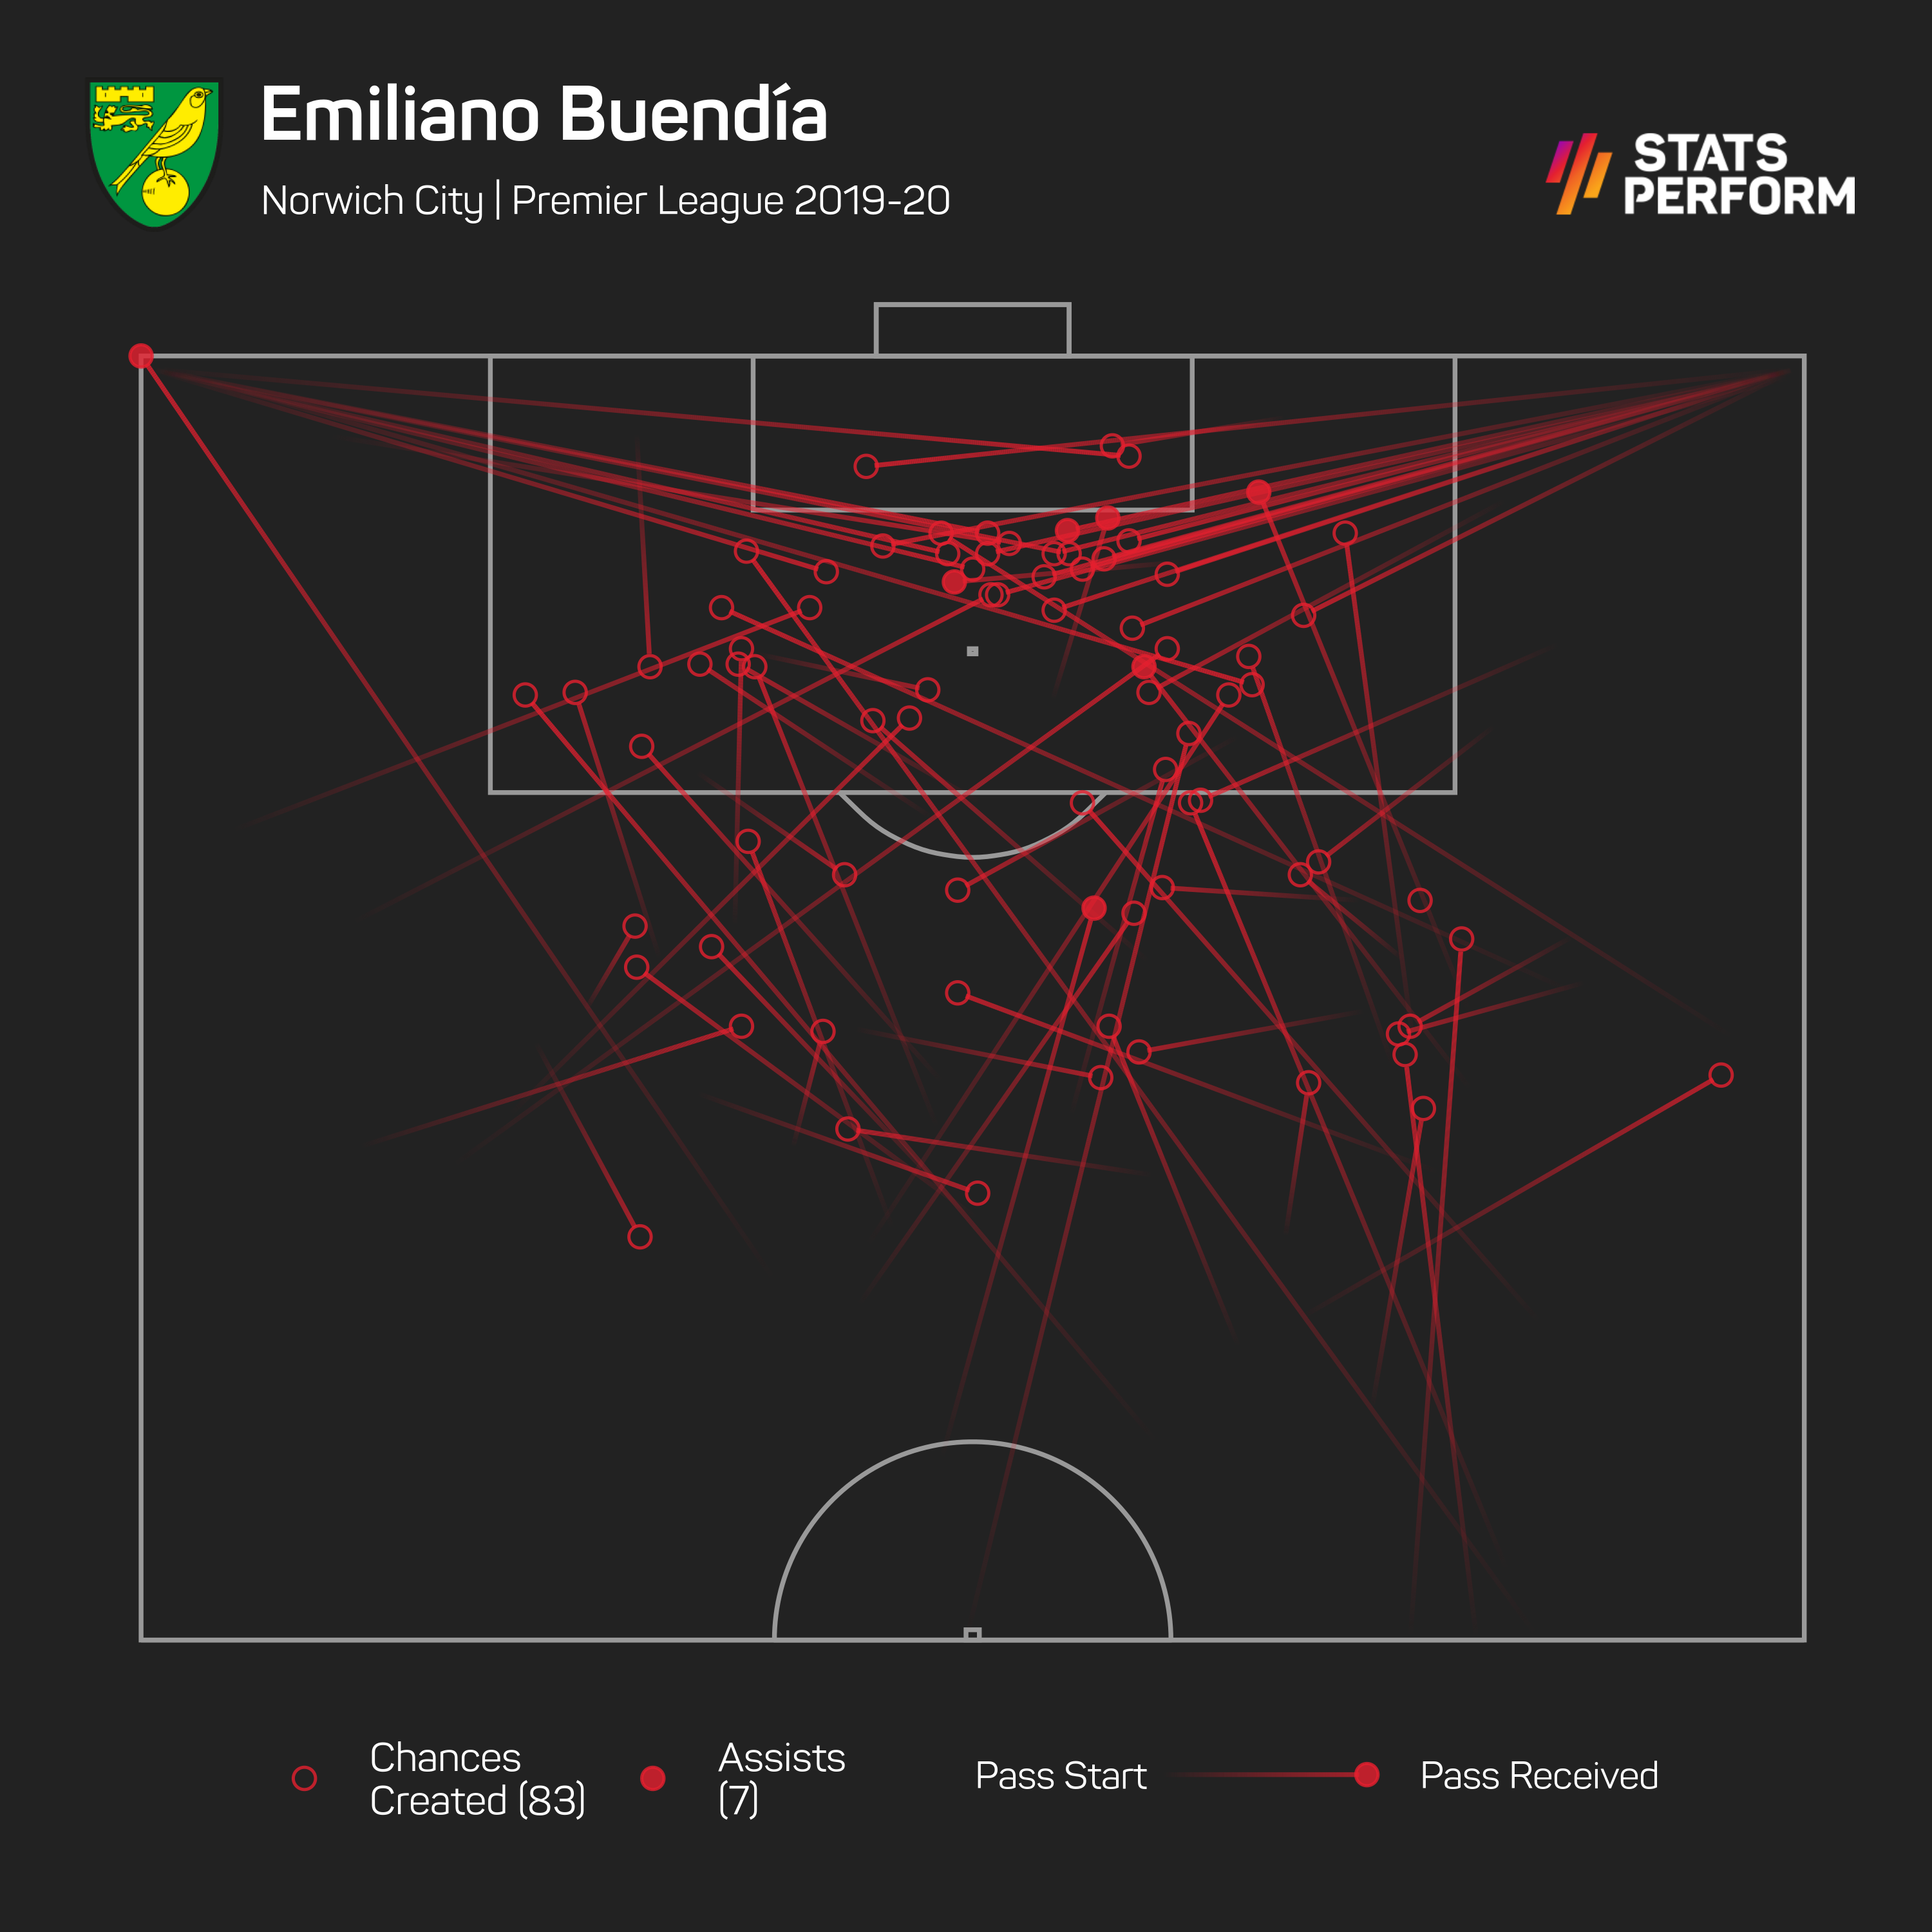 Only three players created more chances in open play than Buendia in the 2019-20 Premier League season